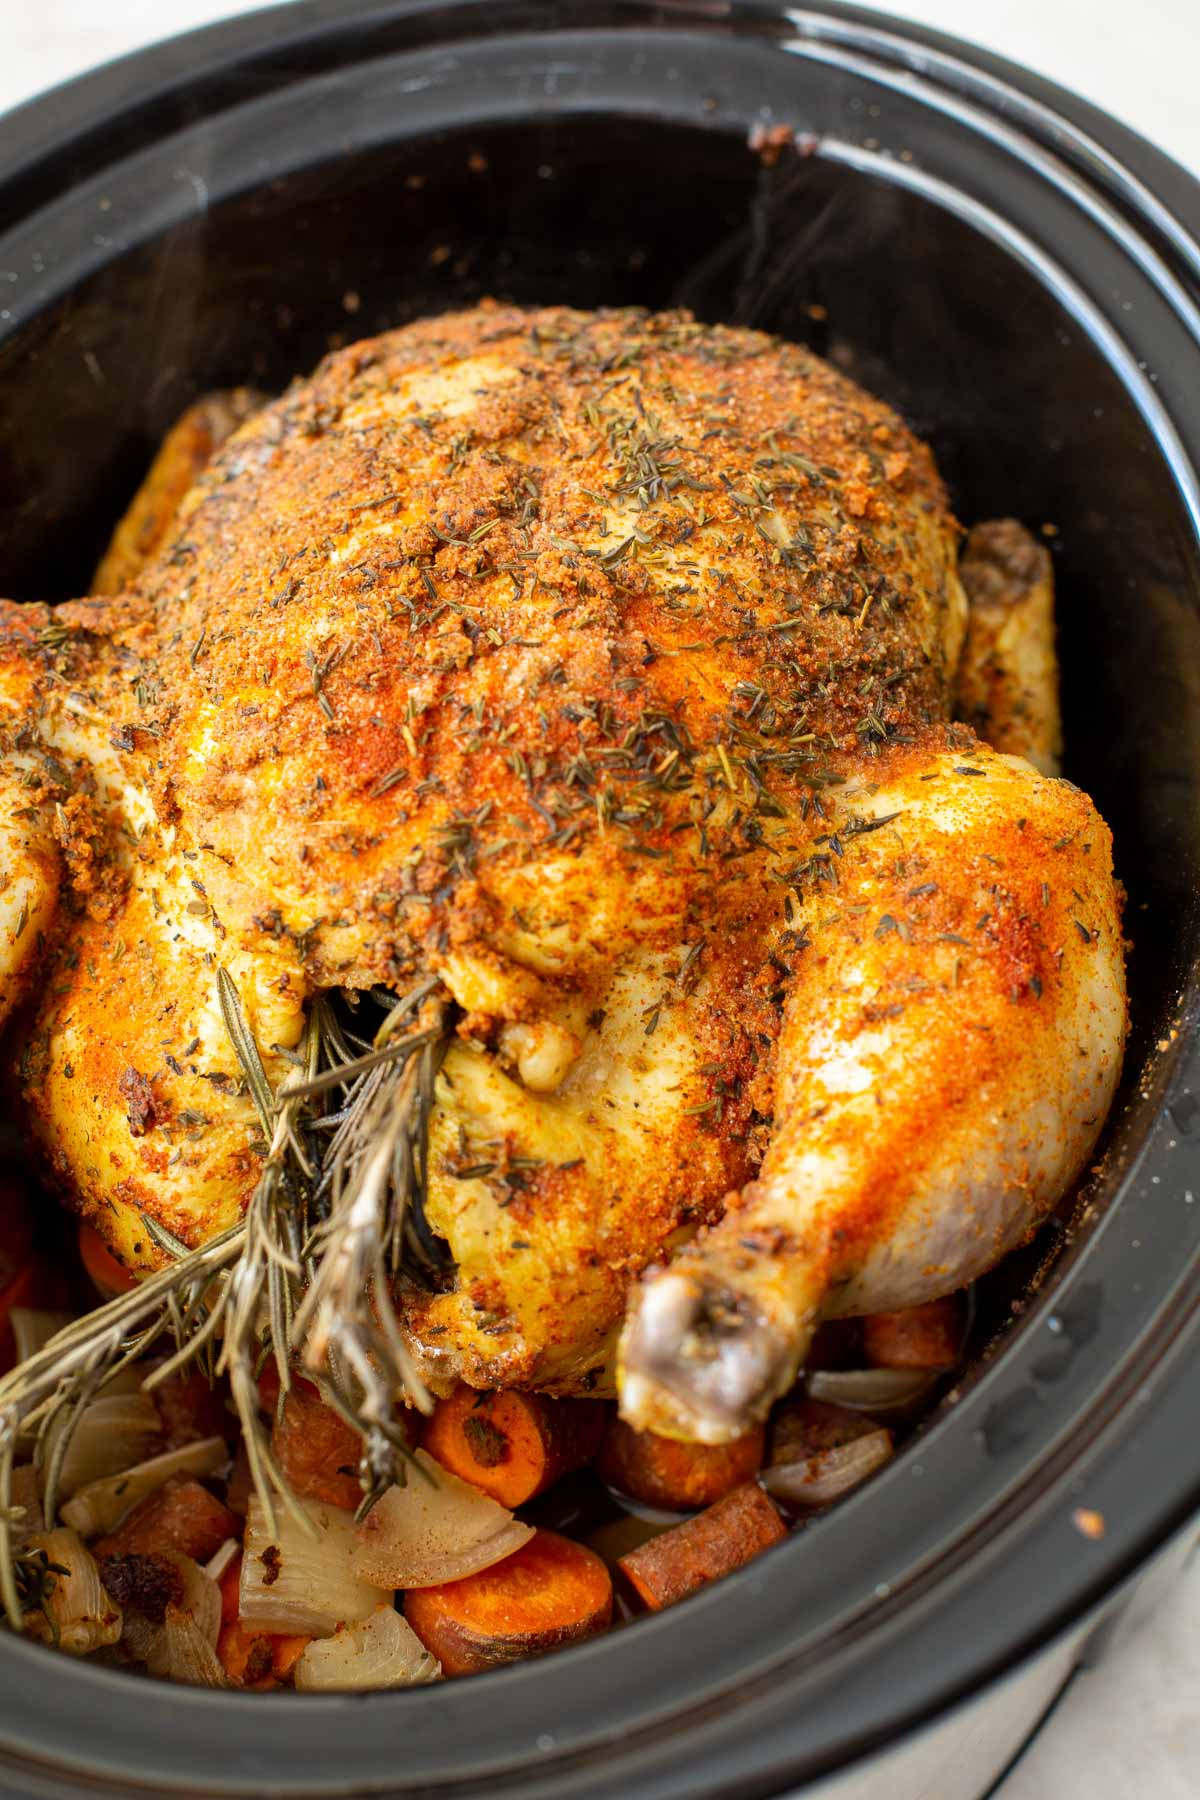 whole chicken in slow cooker after cooking